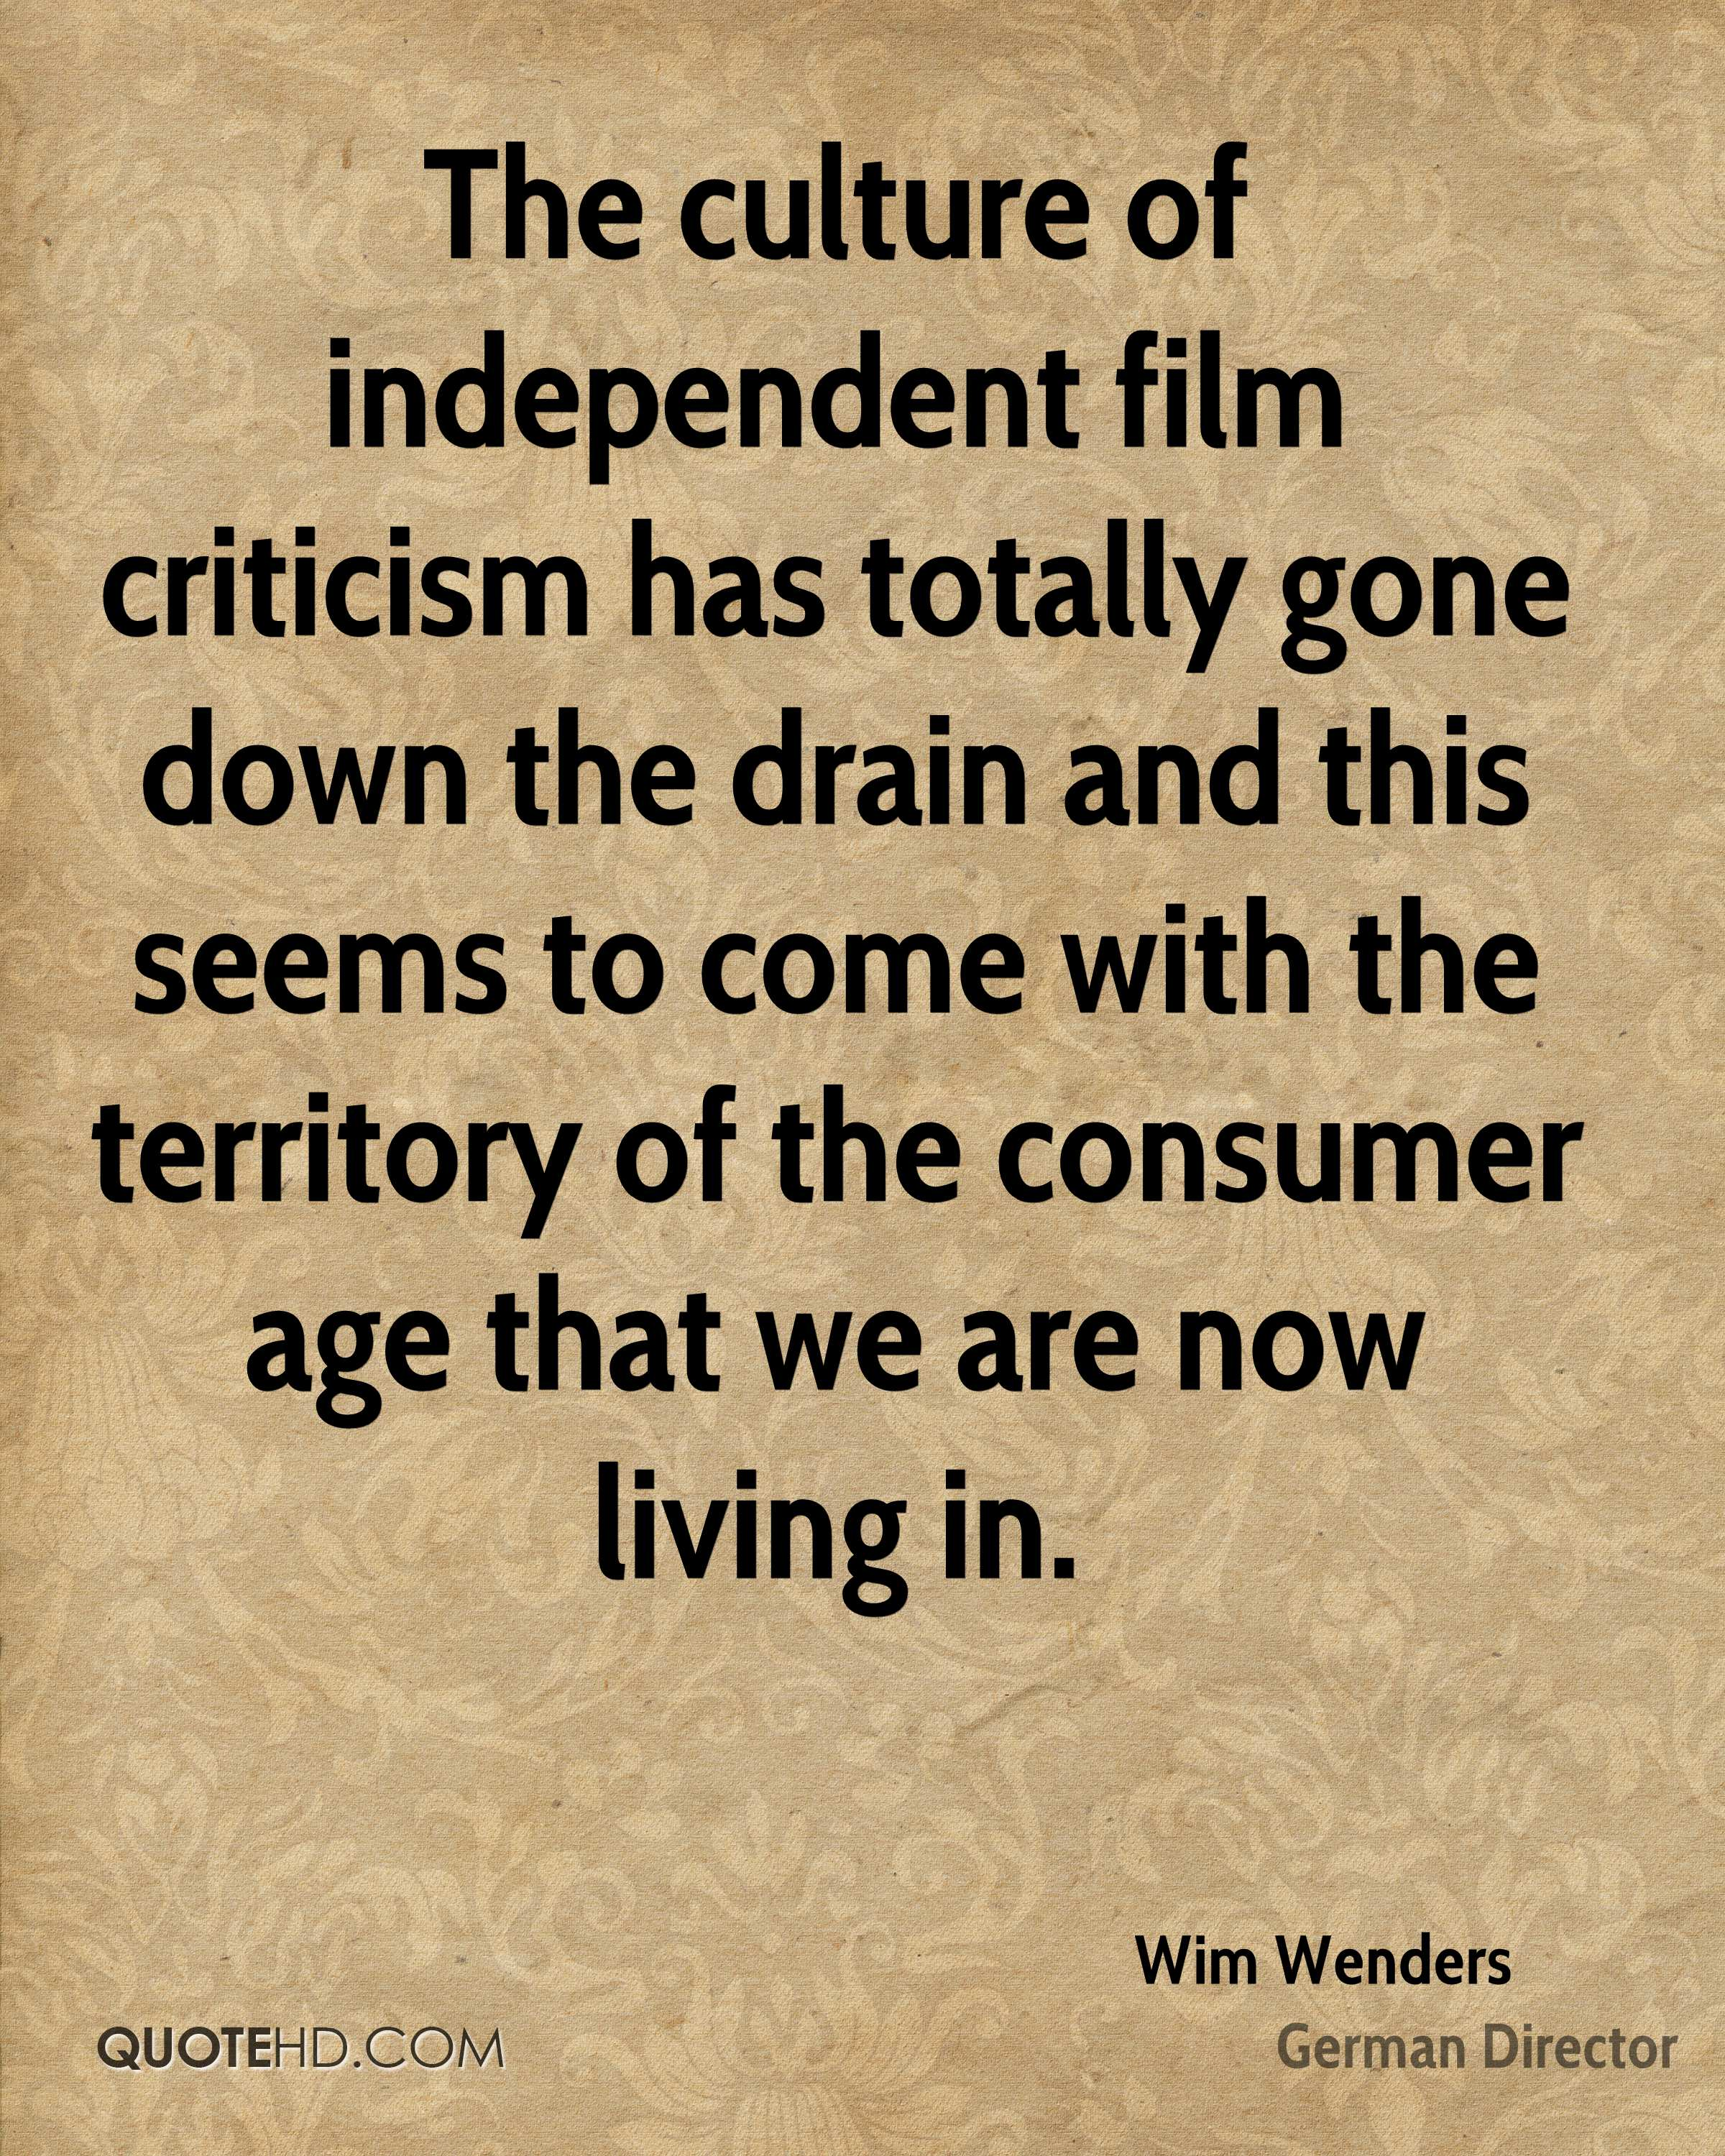 The culture of independent film criticism has totally gone down the drain and this seems to come with the territory of the consumer age that we are now living in.